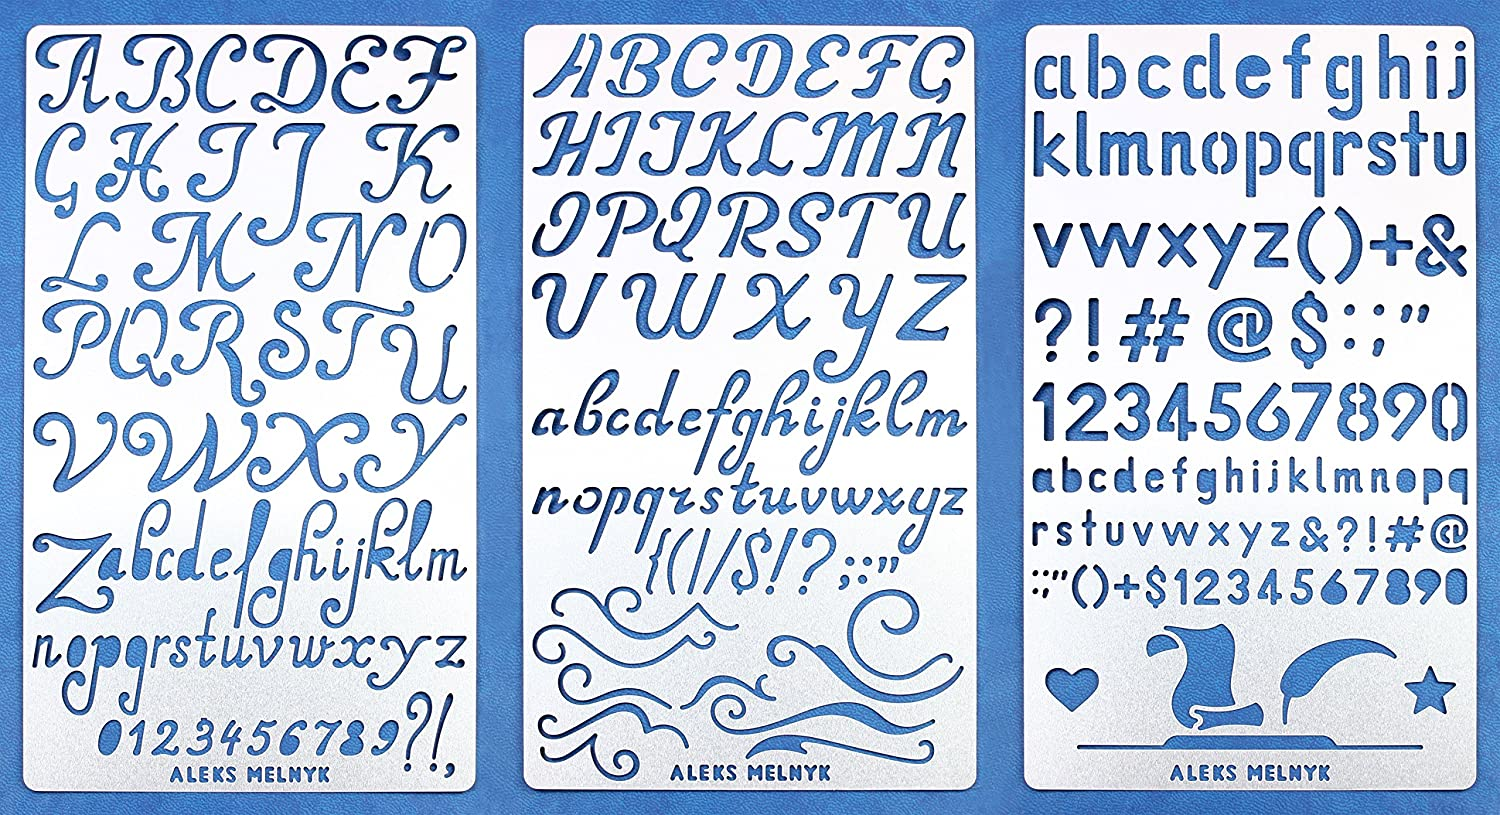 Aleks Melnyk 34 Bullet Journal Stencil Metal/Alphabet Letter Number, ABC/Stainless Steel Planner Set Stencils Journal/Notebook/Diary/Bujo/Scrapbooking/Crafting/DIY Drawing Template Stencil 4336890694